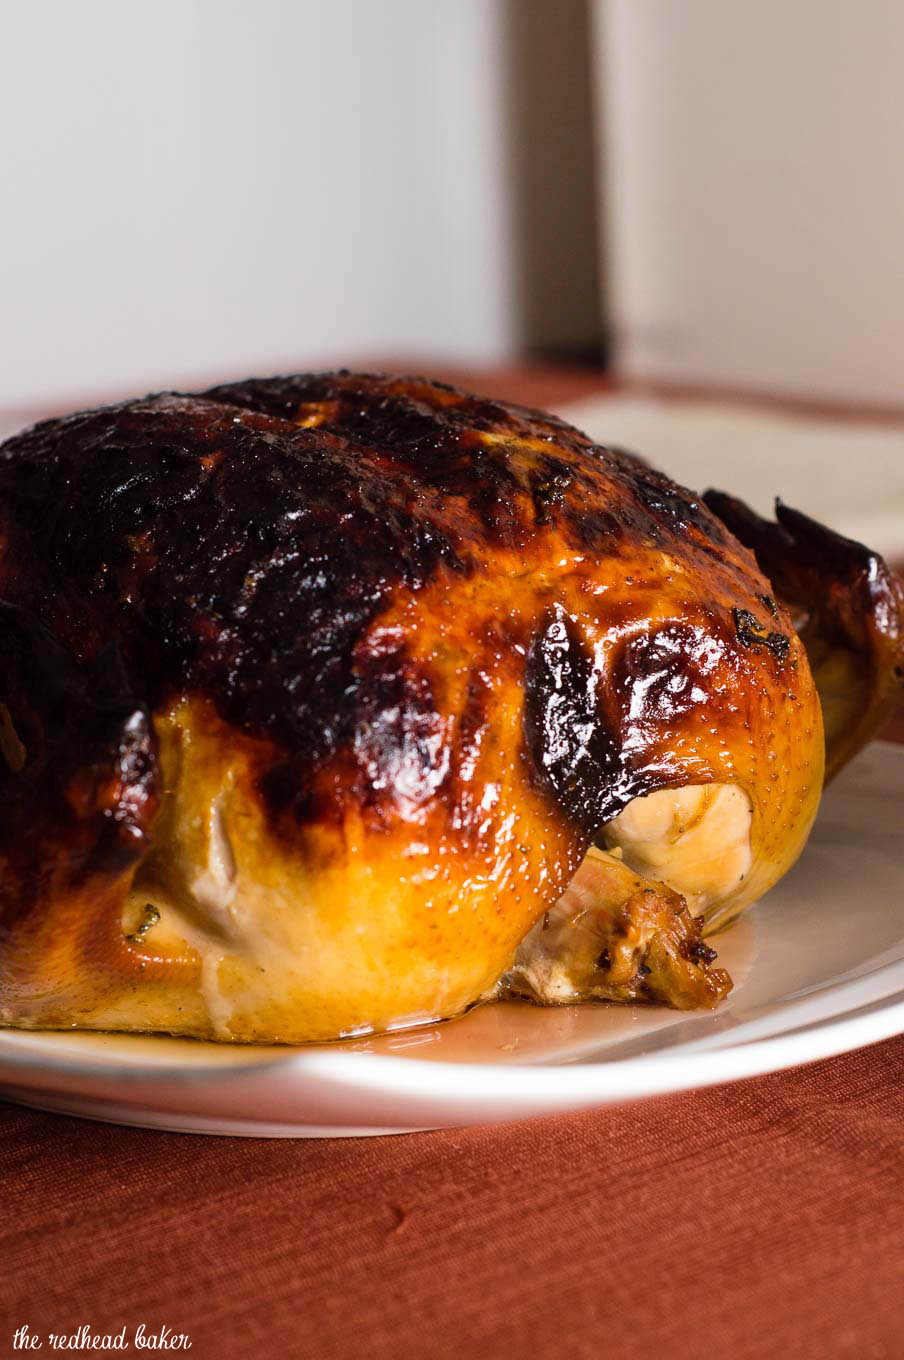 Cider-sage brined turkey has delicious fall flavor, making it the perfect Thanksgiving bird. The brine ensures the turkey stays moist, and sage compound butter crisps the skin.